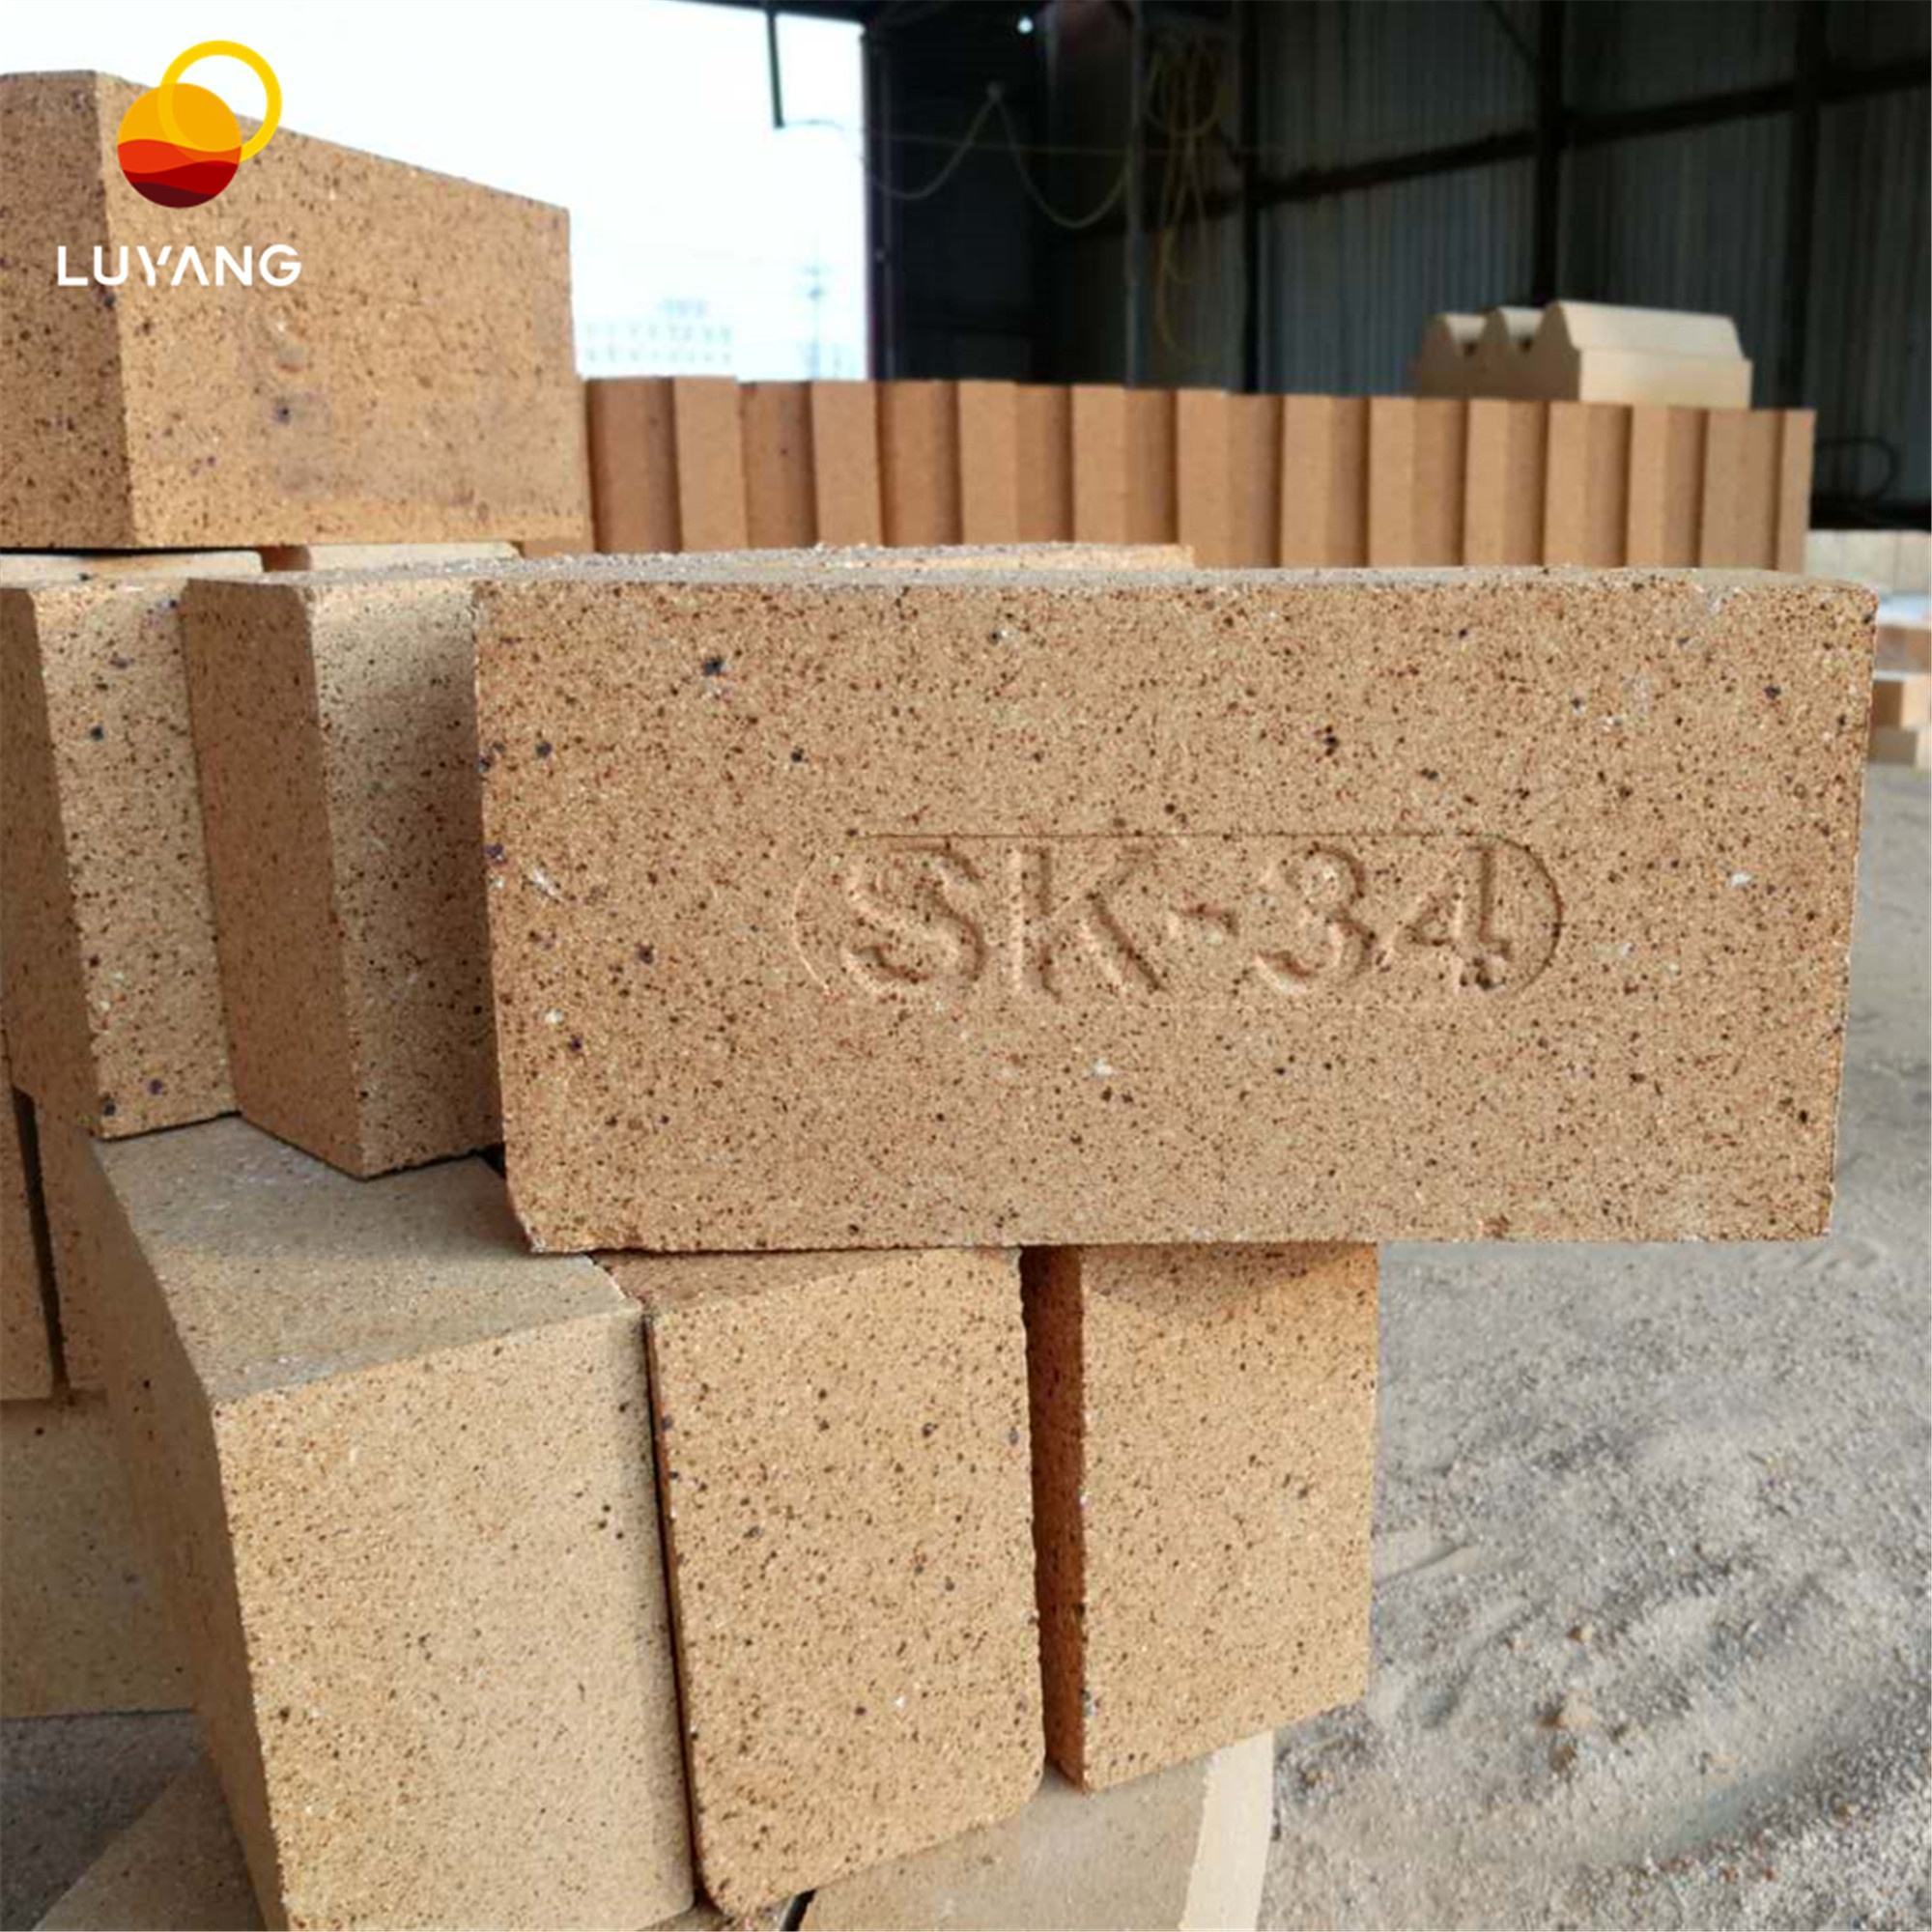 LUYANG Fire Clay Brick